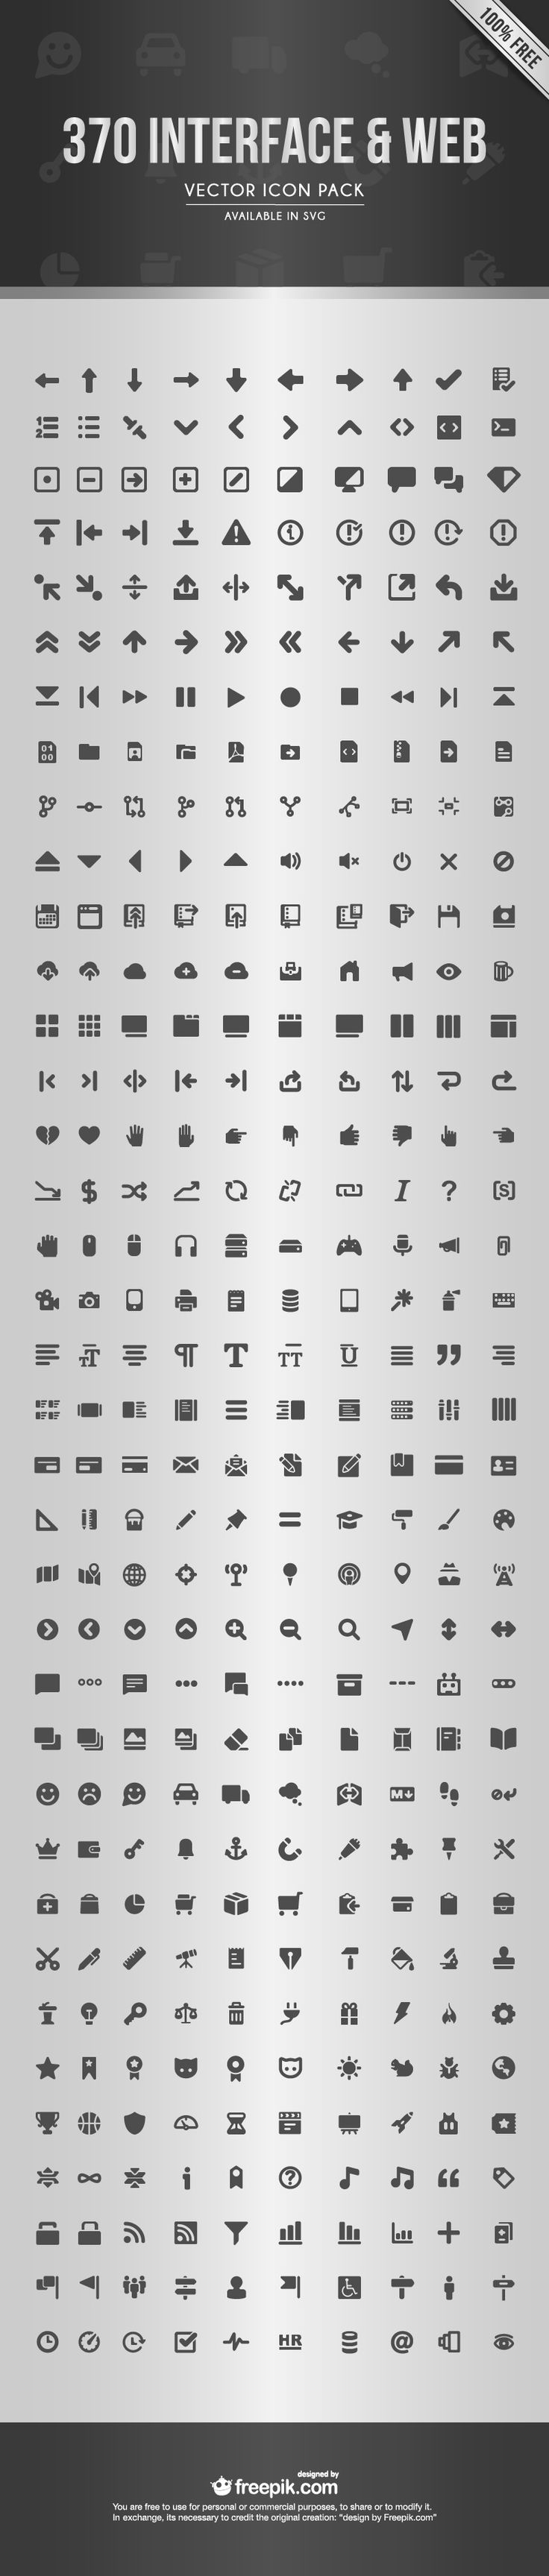 The Web Interface Icon Set (370 Icons, SVG & AI)